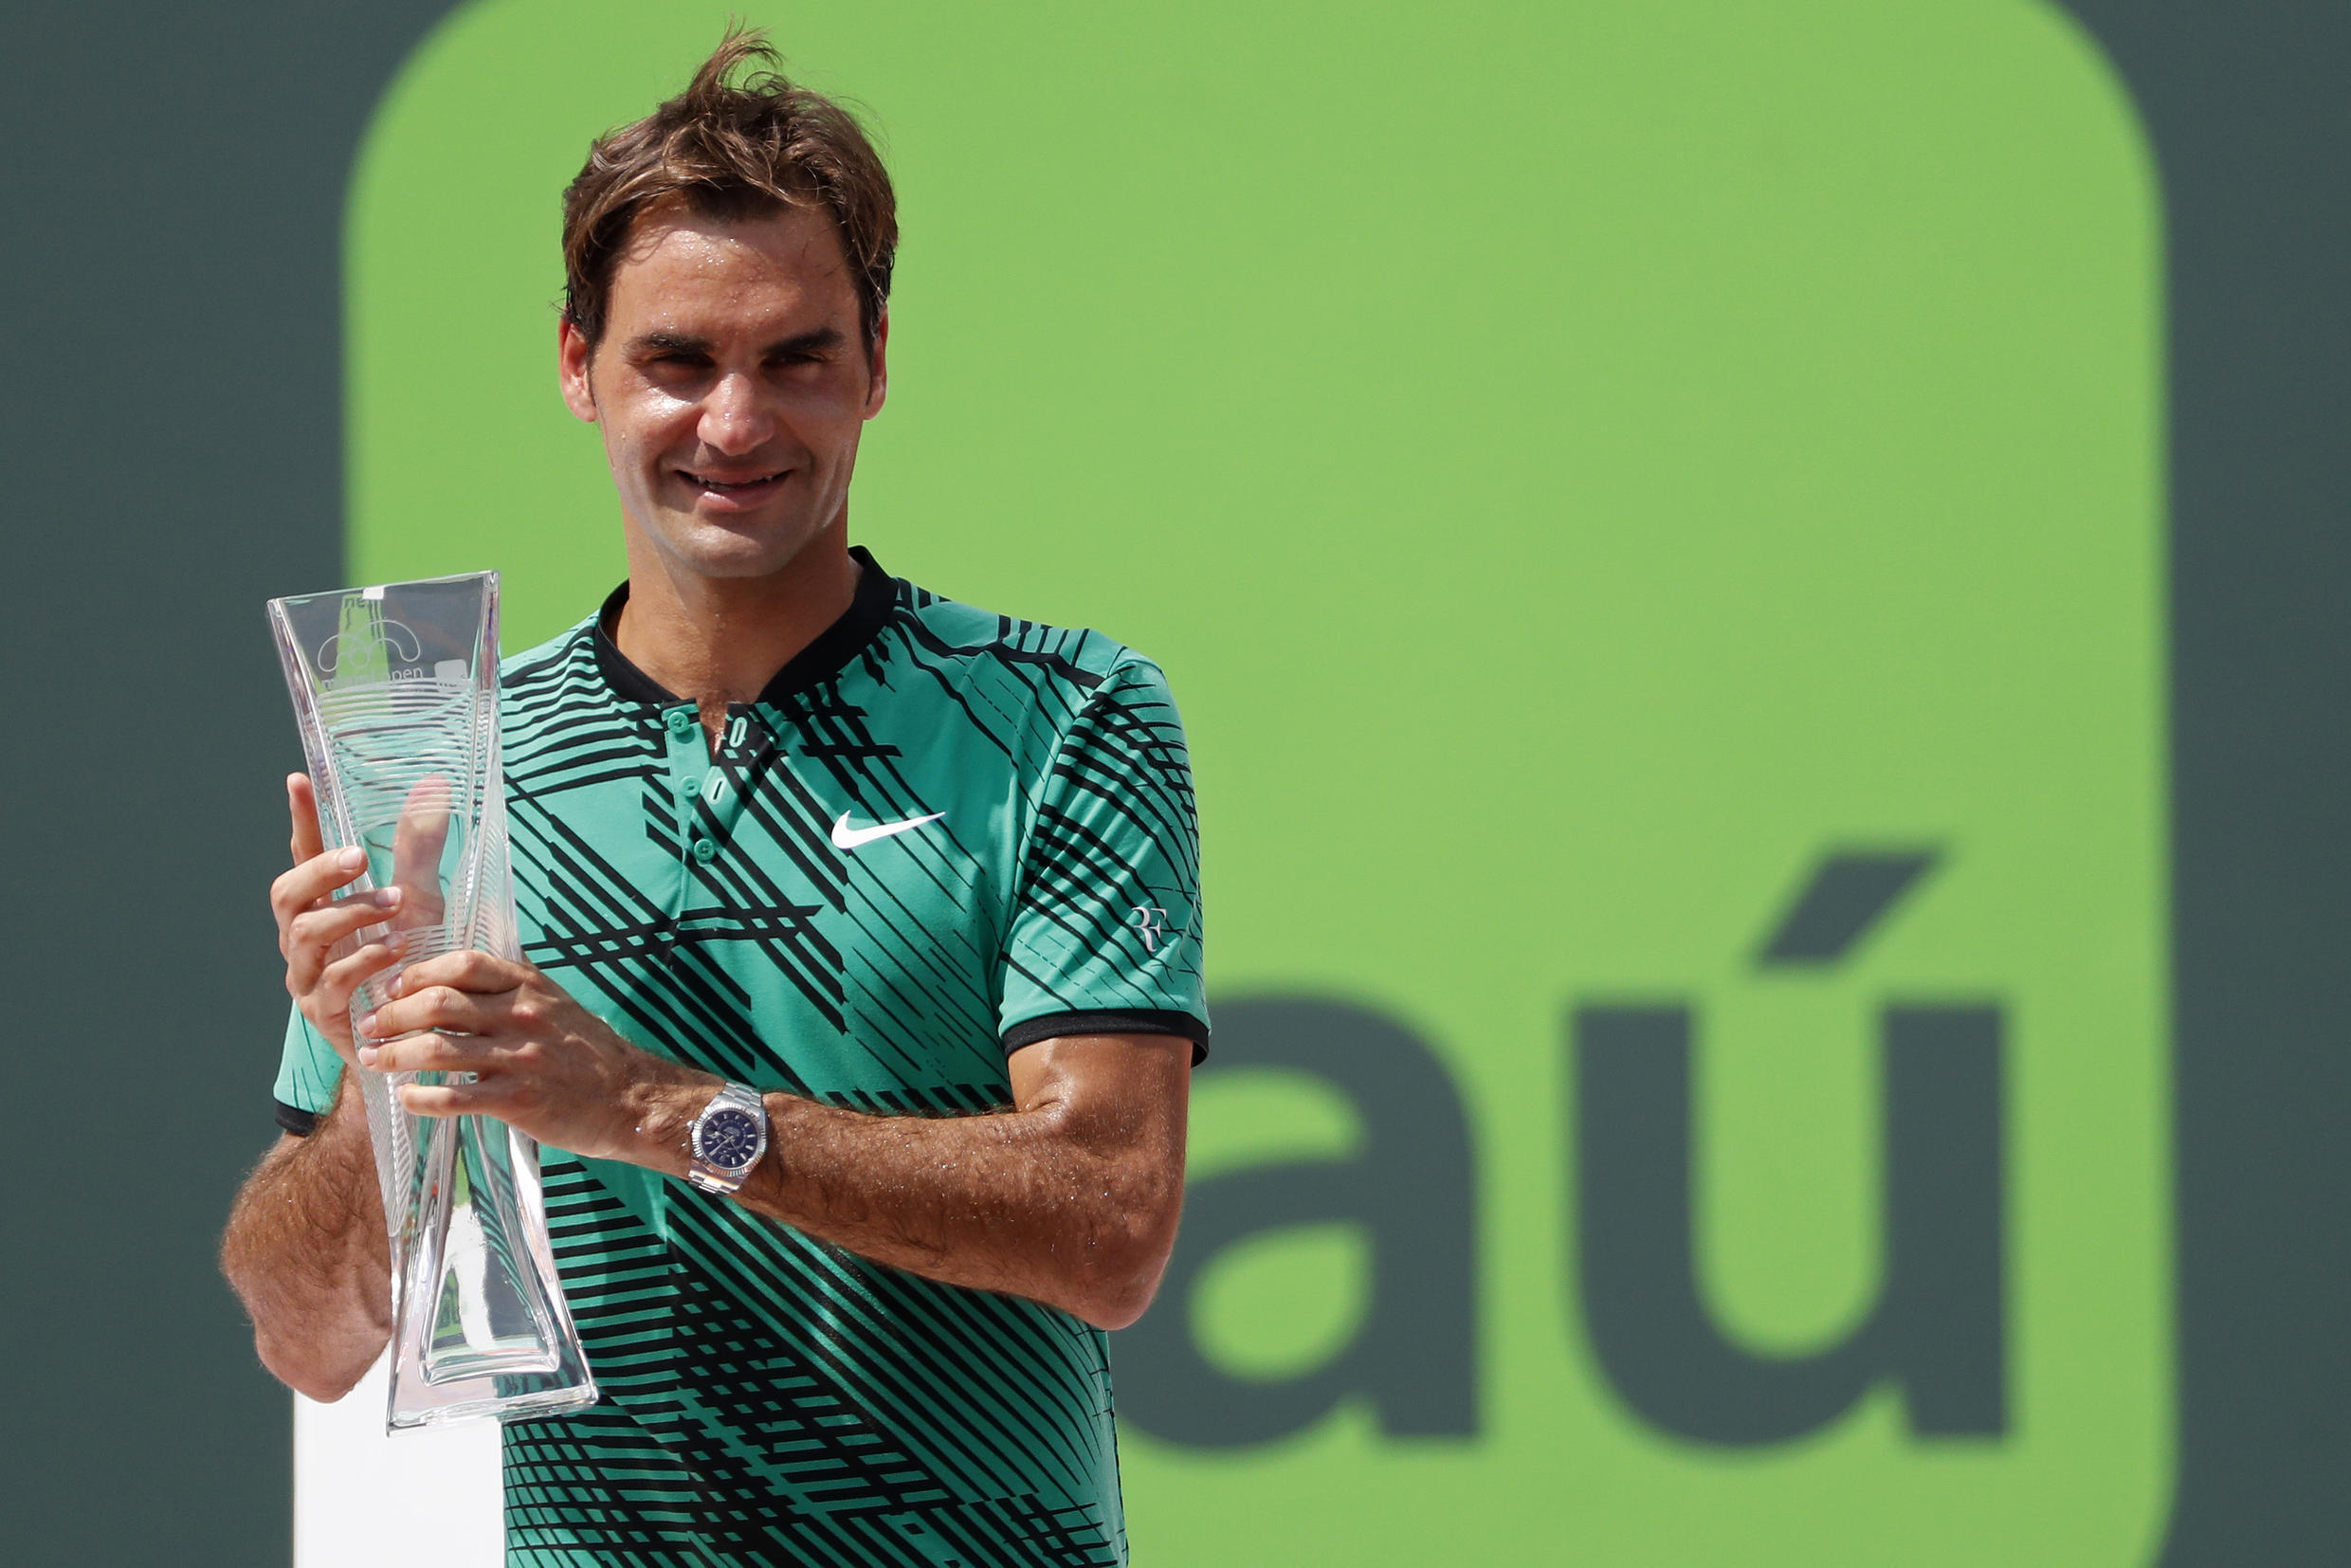 Roger Federer claimed his third Miami Open title after a straight sets win over Rafael Nadal. The Swiss also beat the Spaniard in the 2005 final.